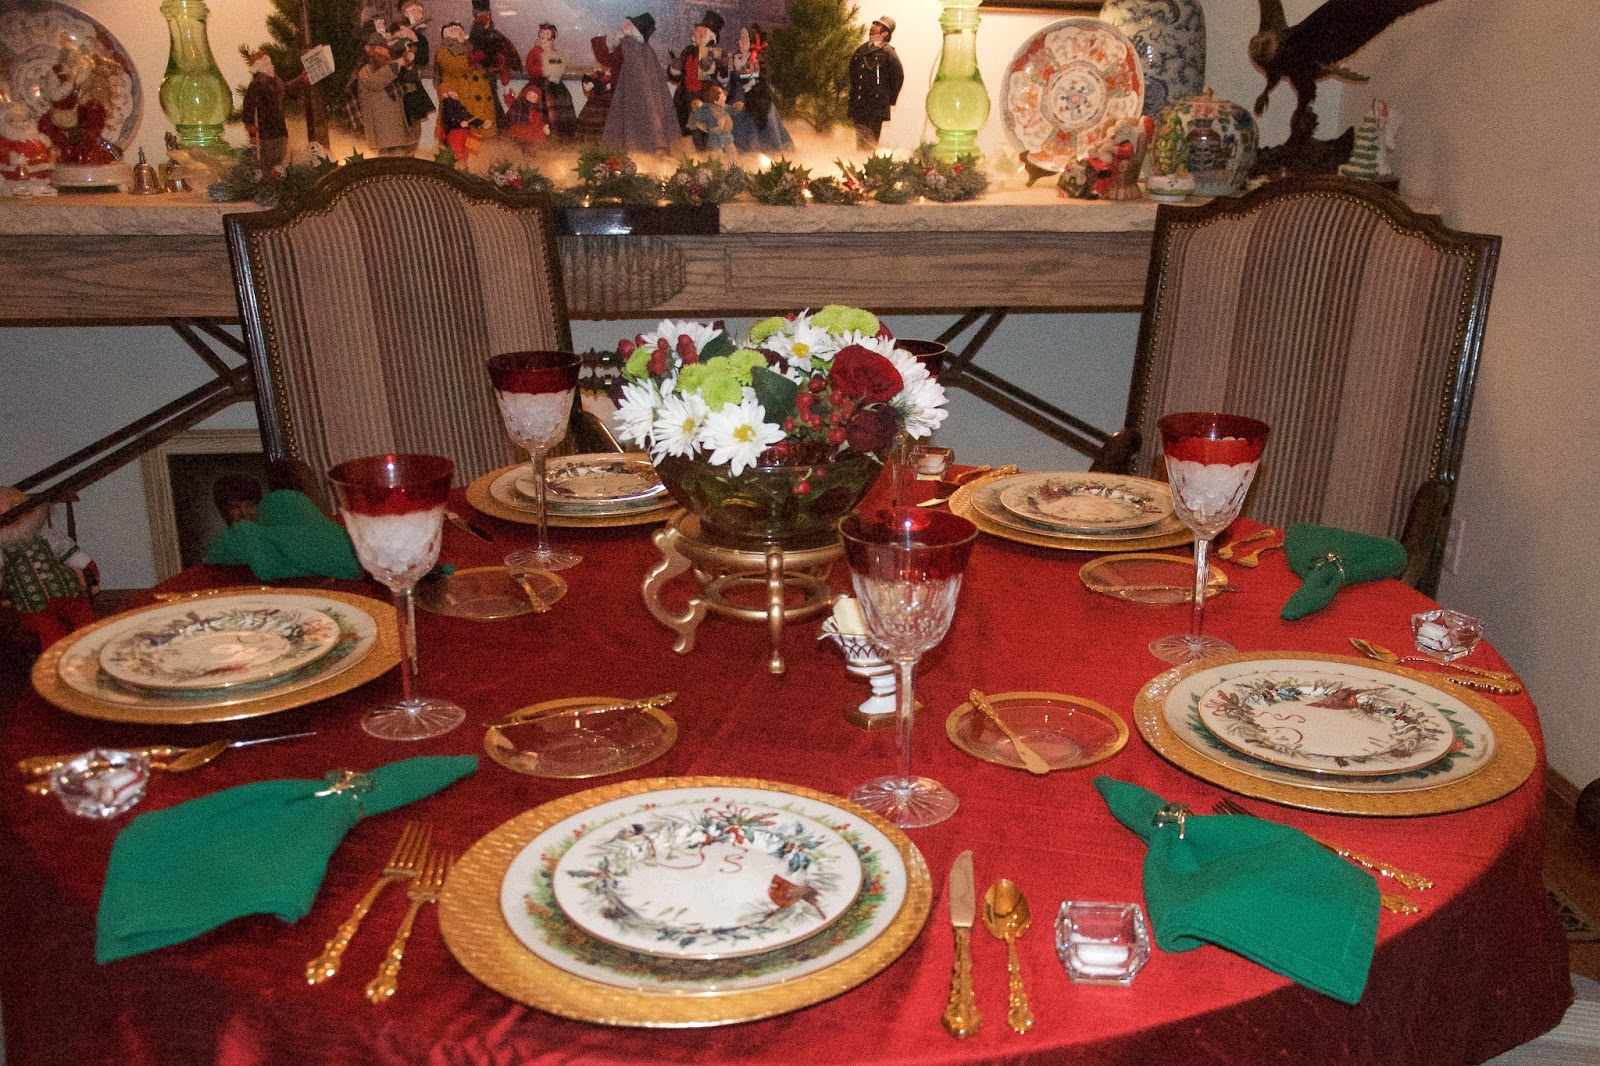 We Wanted To Share A Tree With Beatrice Emaline And Her Mama Daddy Dinner Followed At The Games Table In Living Room Come On